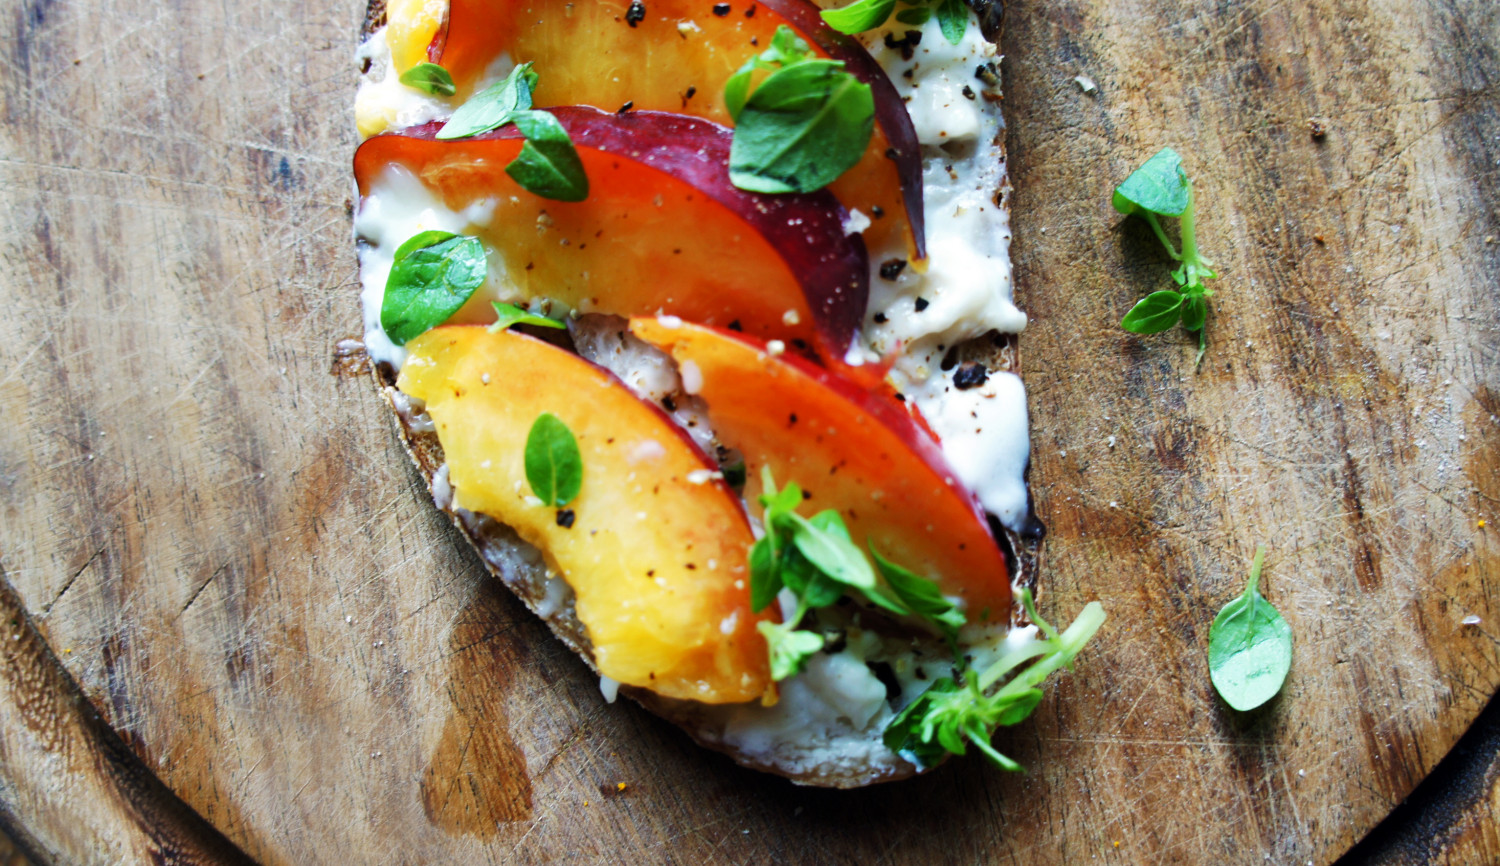 Nectarine and Goats Cheese Tartine with Basil – Tess Ward